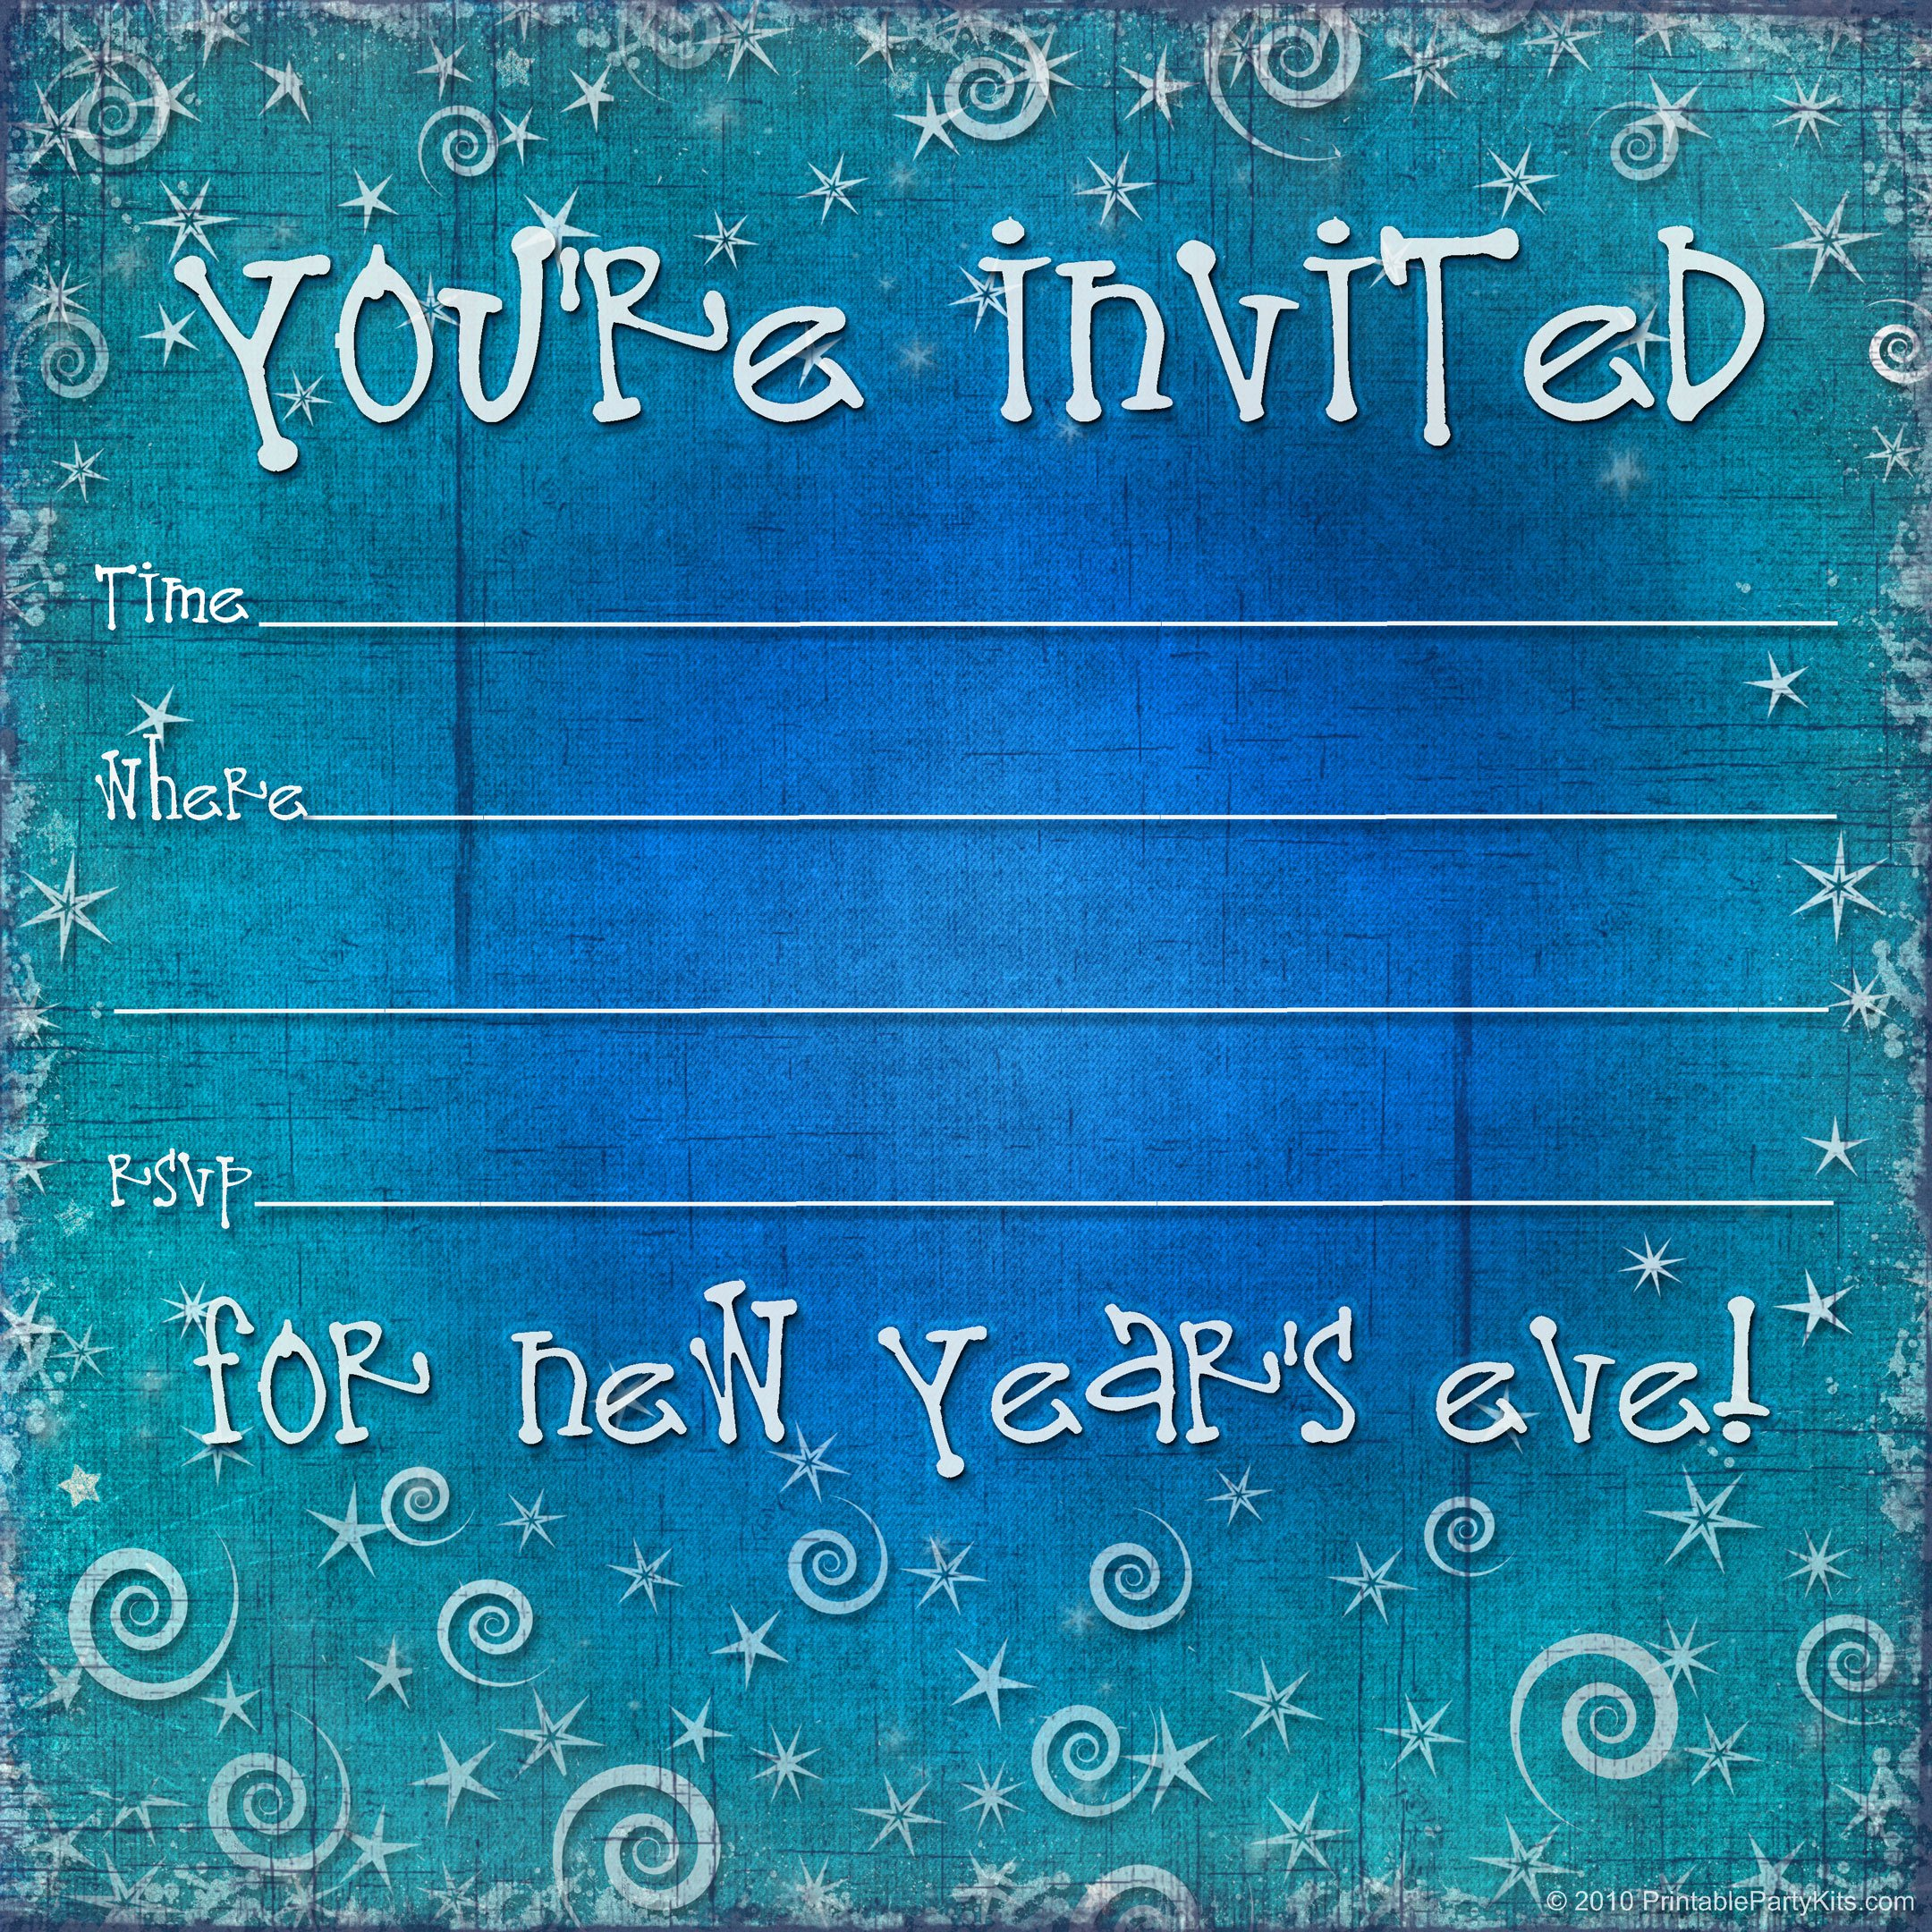 New Years Eve Invitations Templates Inspirational Free Printable New Years Eve Party Invitation Template